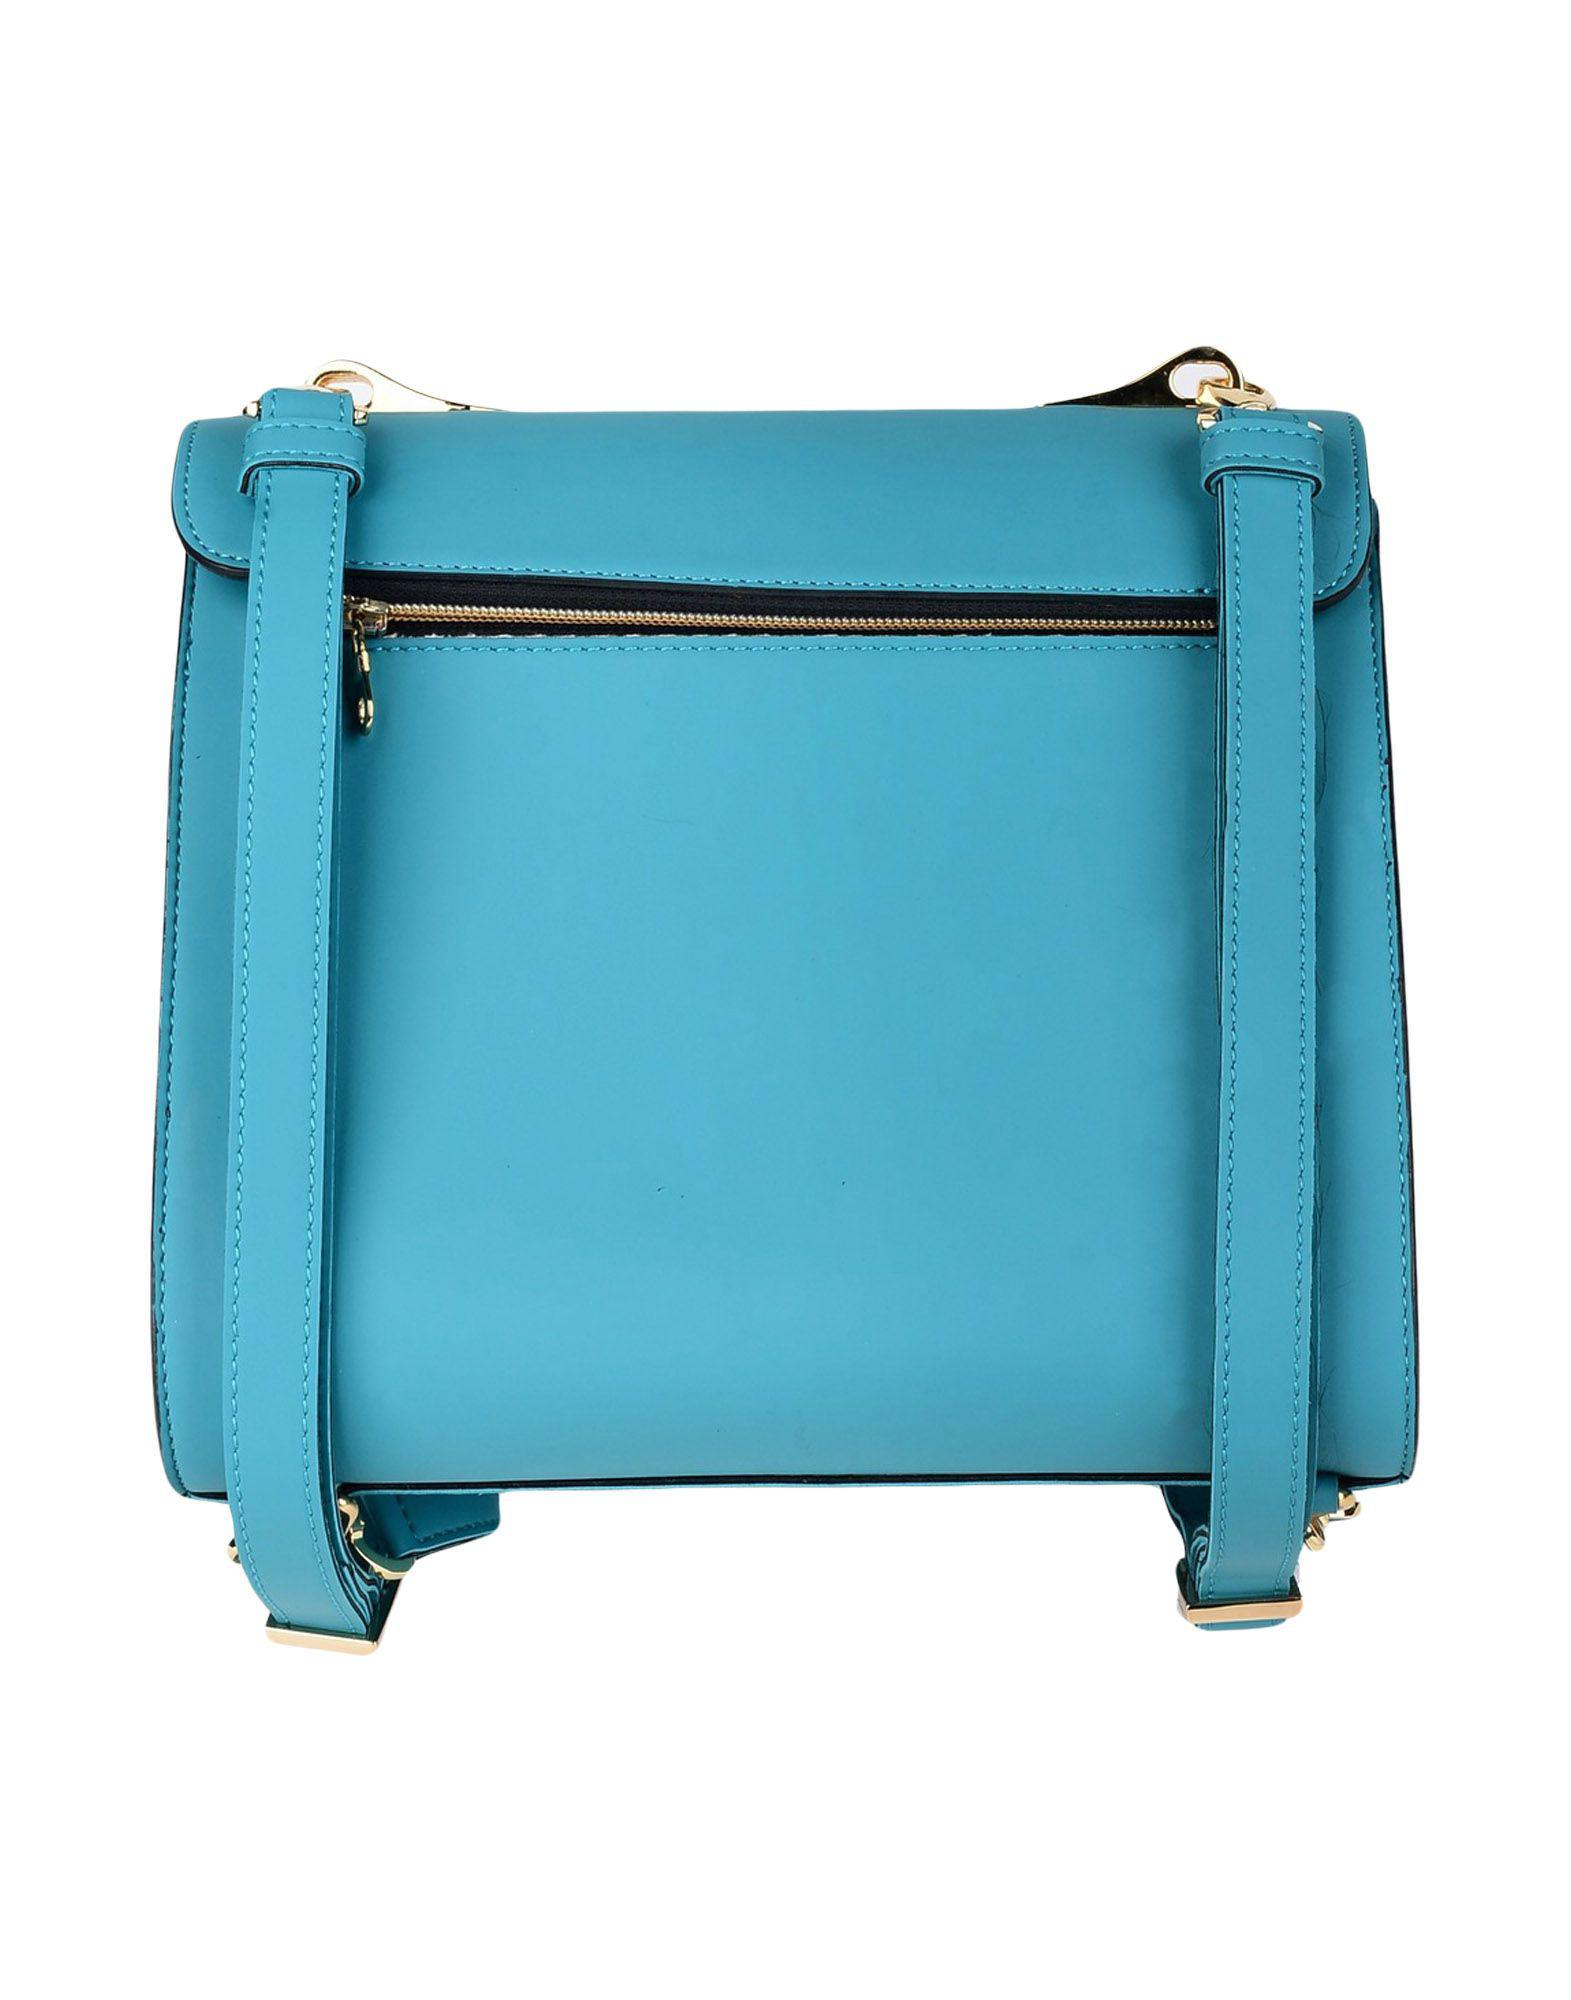 Braintropy Backpacks & Fanny Packs in Turquoise (Blue)